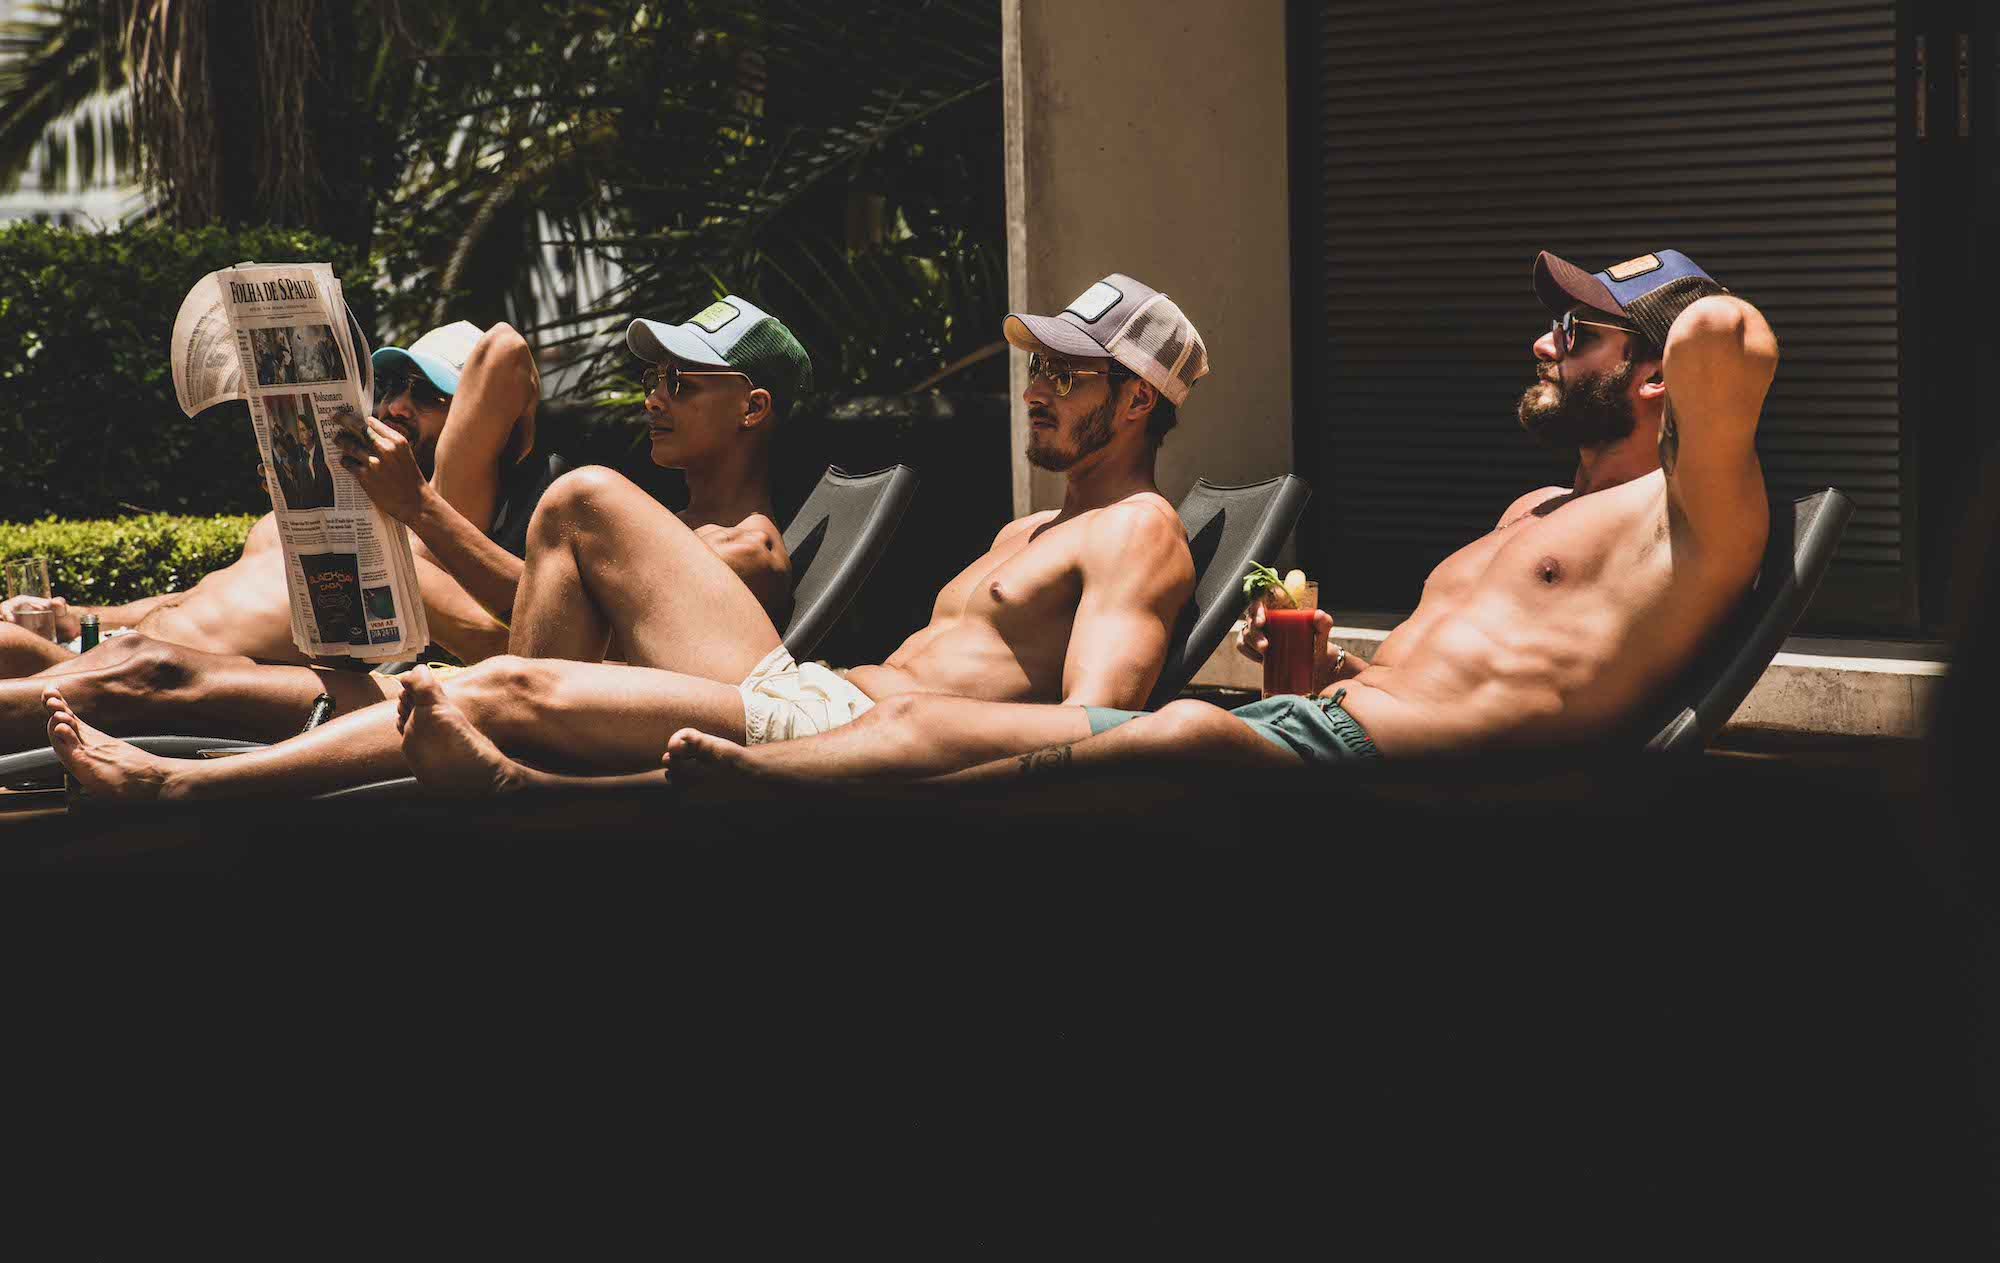 John Hatter & co are the brand new trucker hat company 4 men laying down wearing the hats